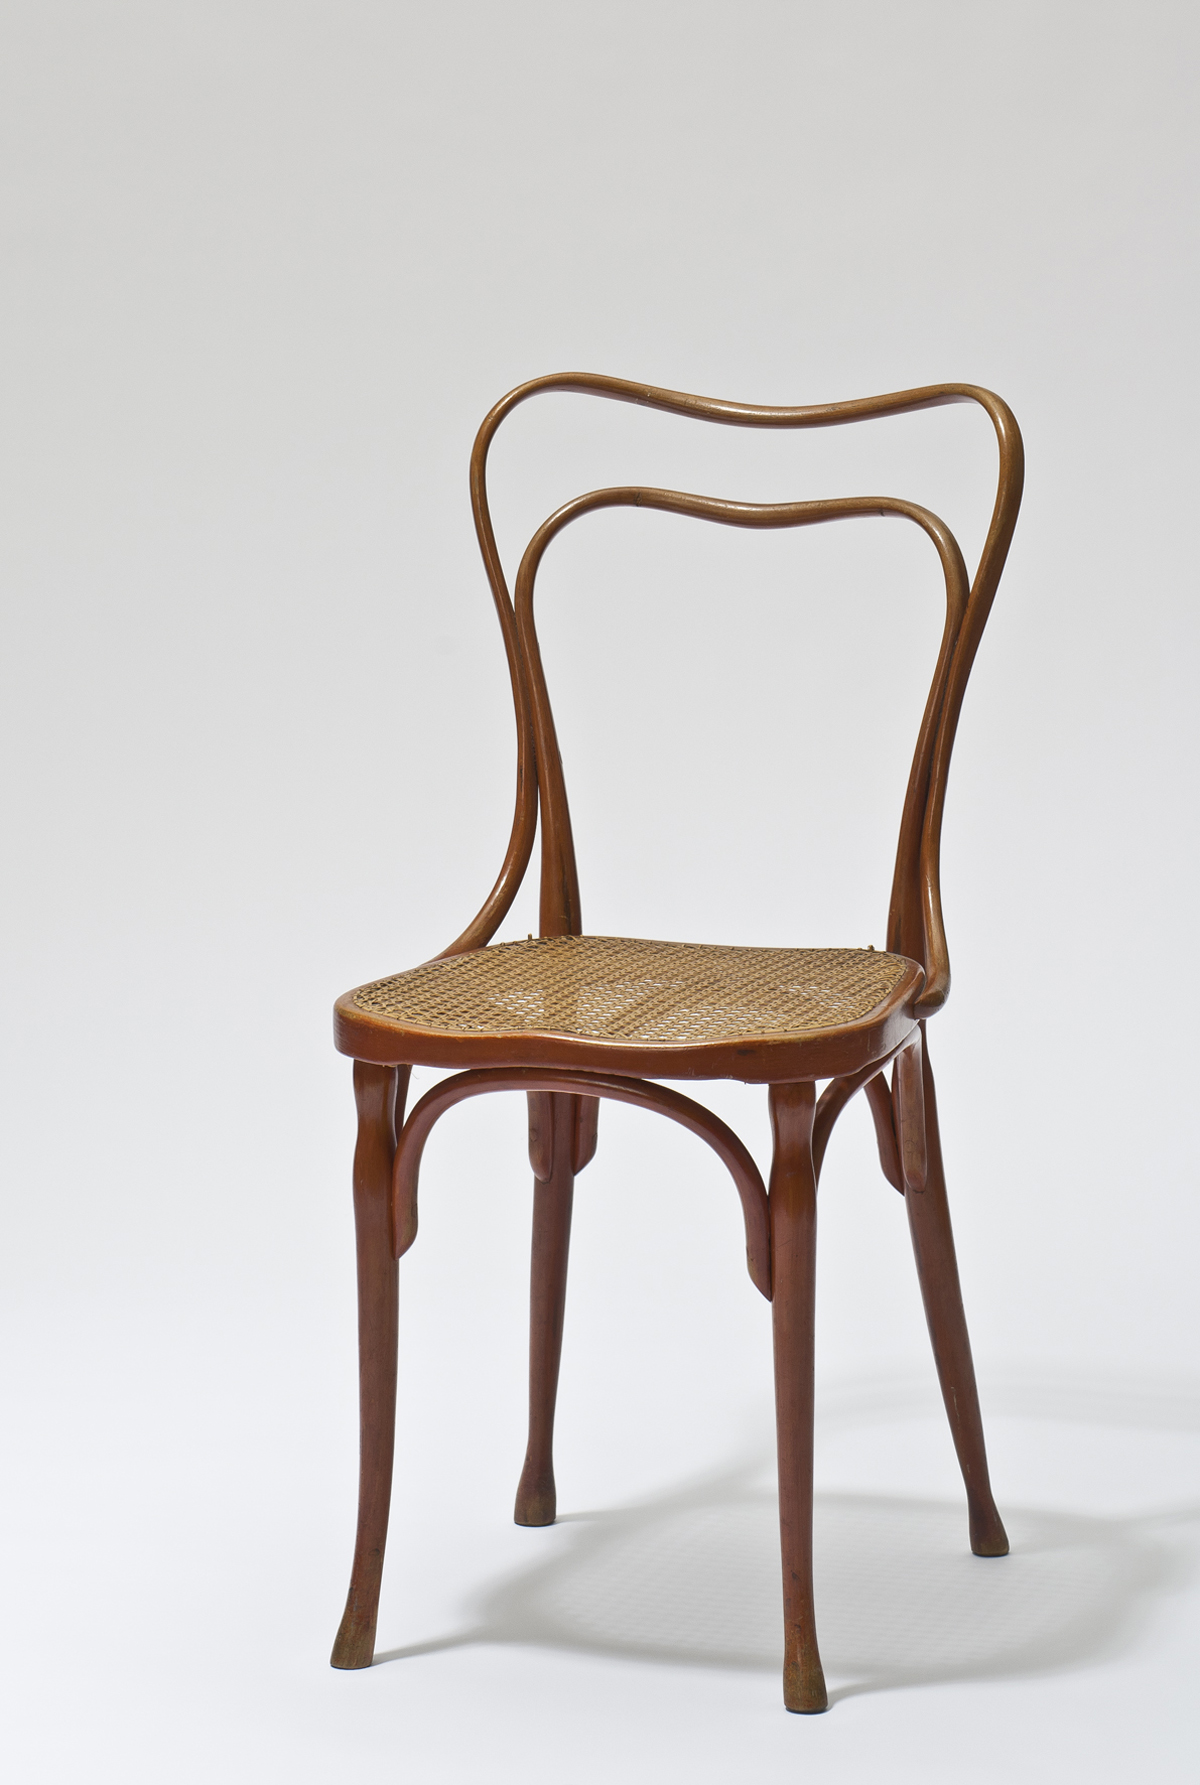 Adolf Loos, chair for Café Museum, Vienna, 1899, © MAK/Georg Mayer